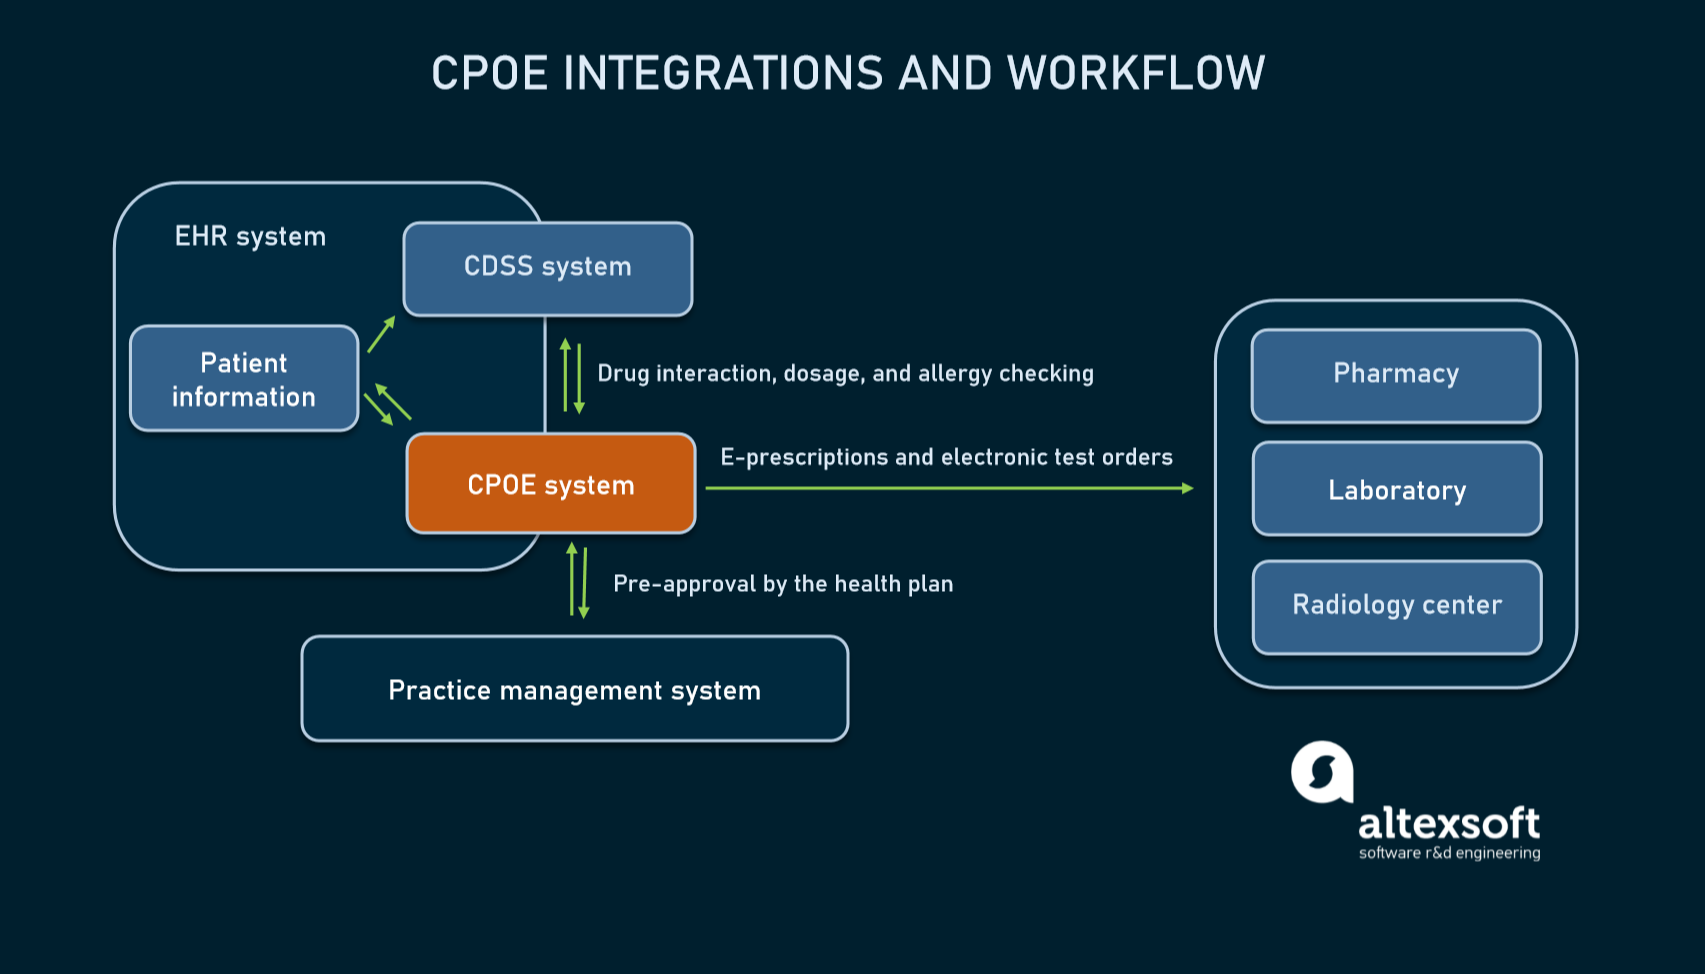 CPOE workflow and integrations with other systems